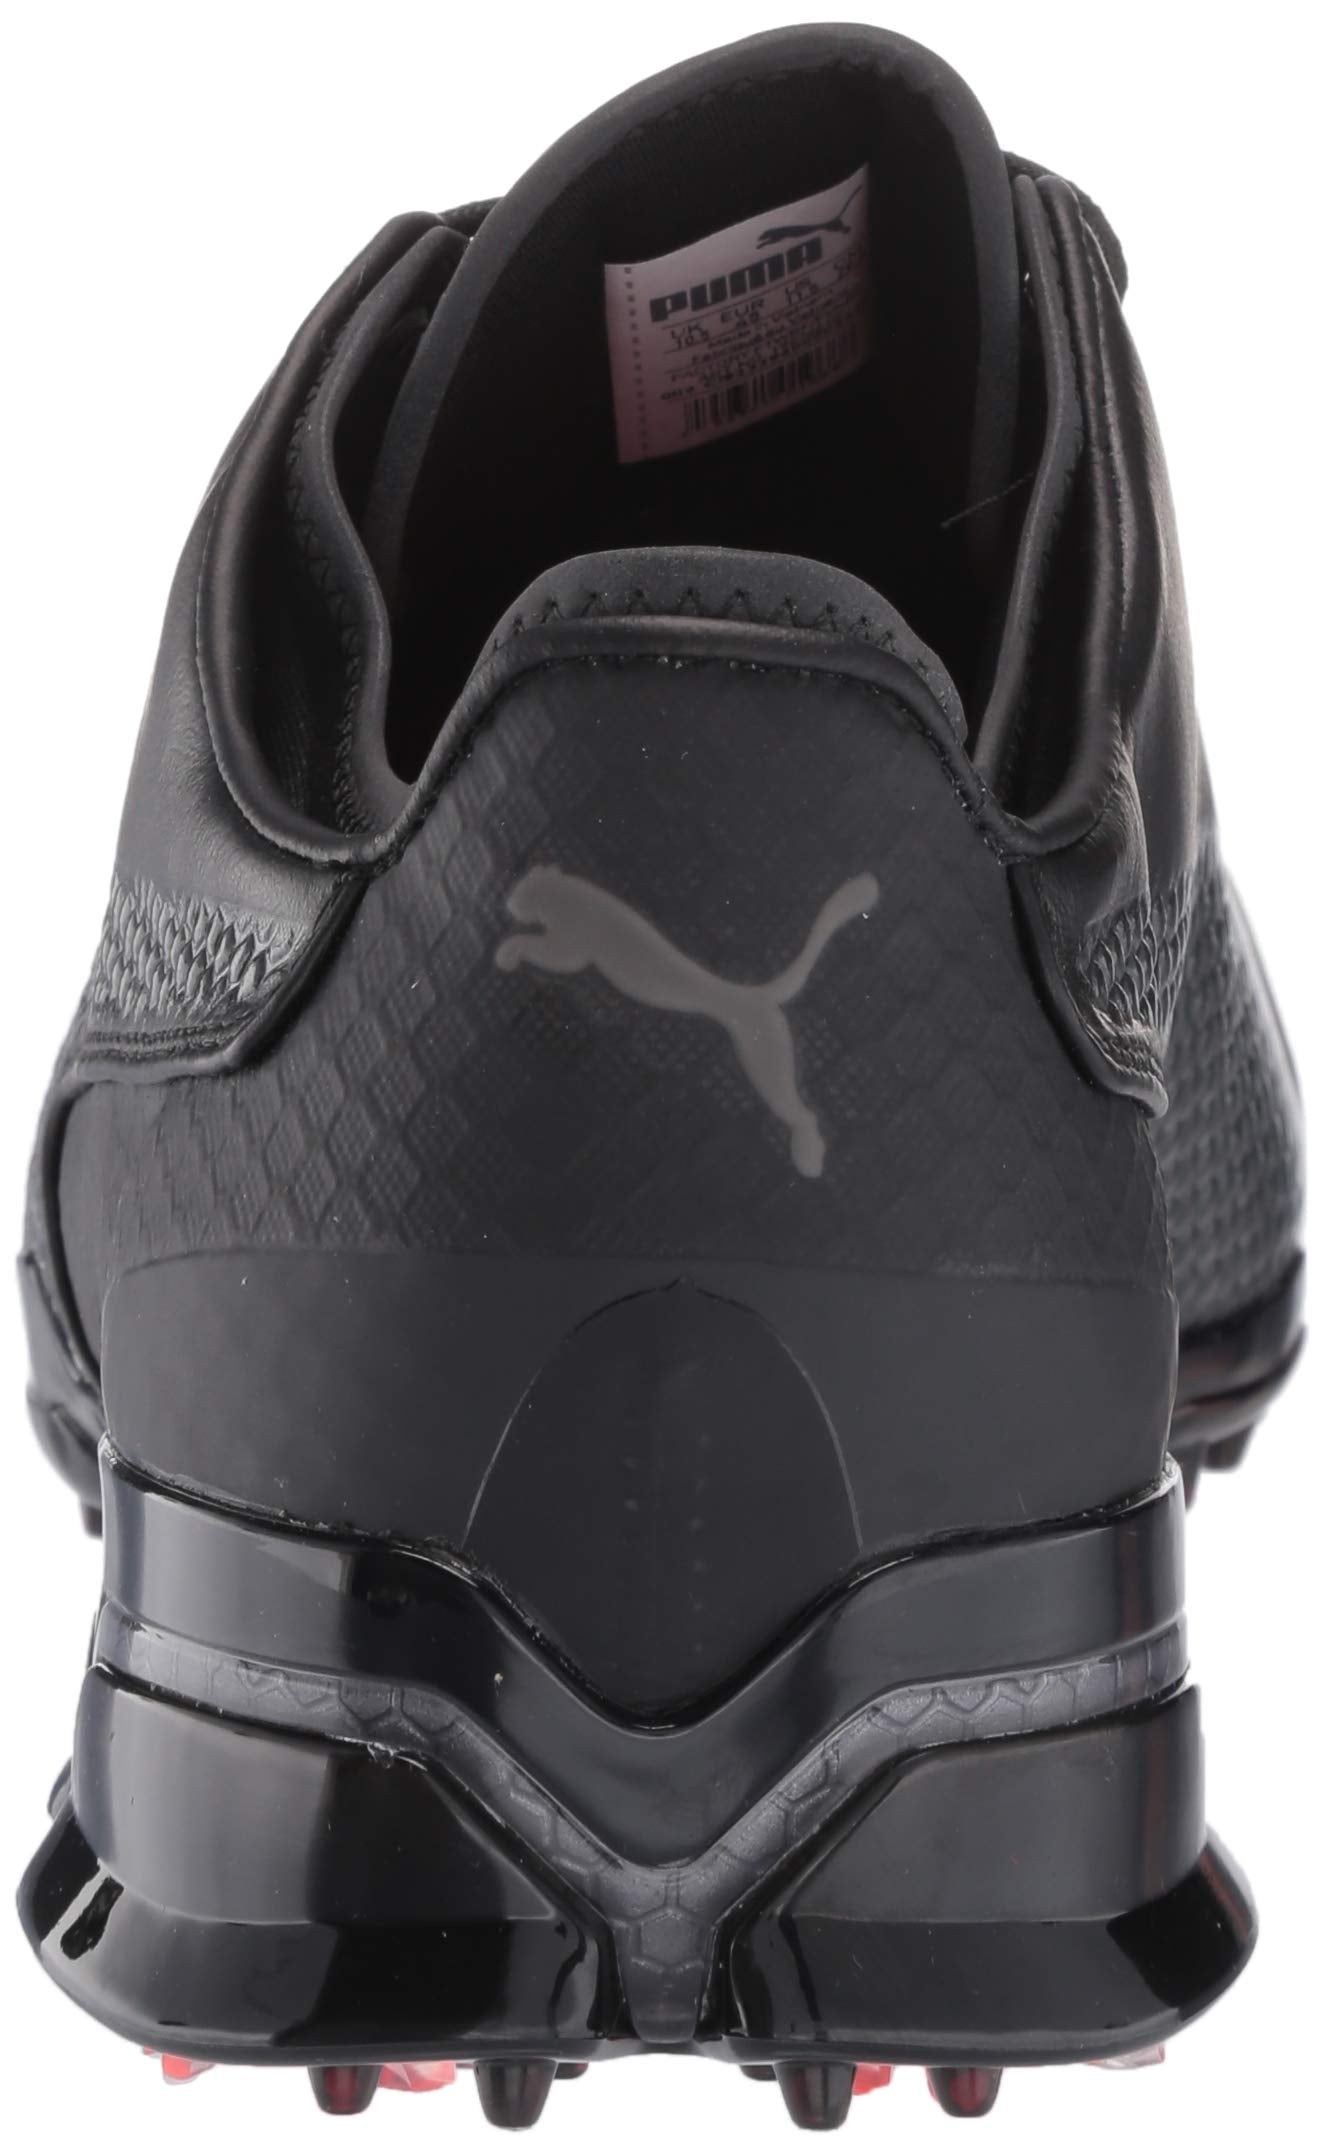 Puma Golf Men's Ignite PROADAPT Golf Shoe